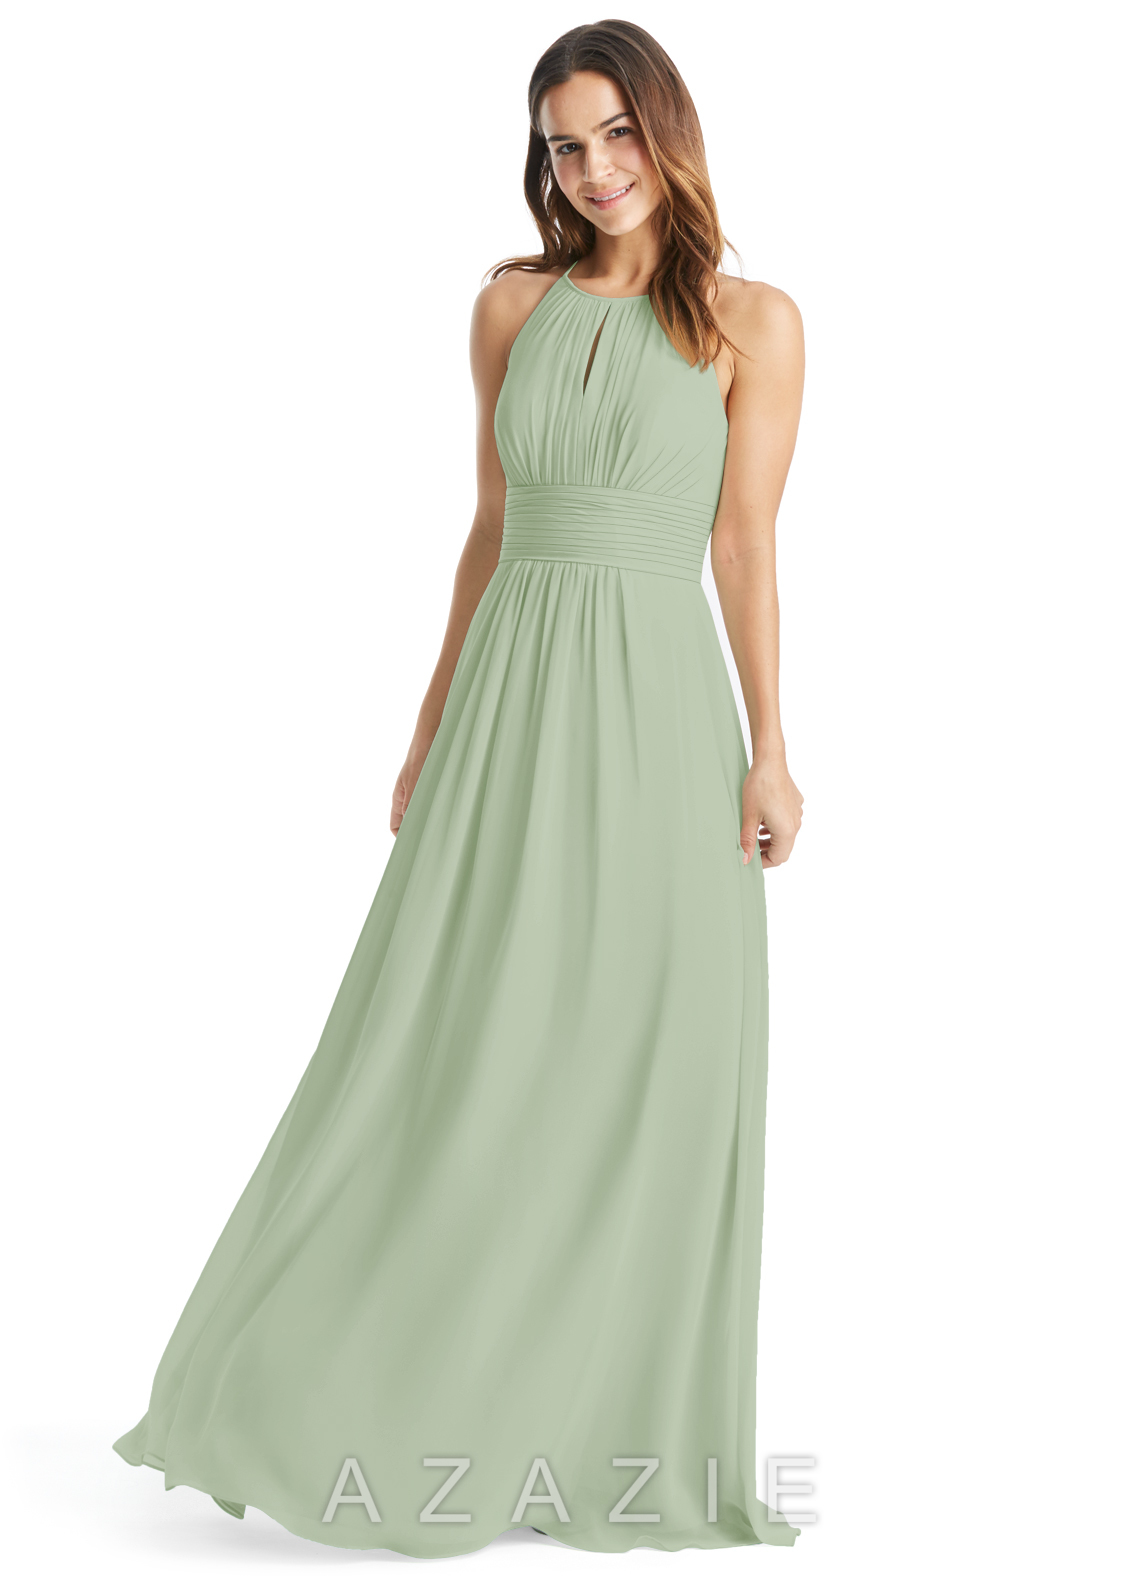 Azazie bonnie bridesmaid dress azazie color dusty sage ombrellifo Gallery